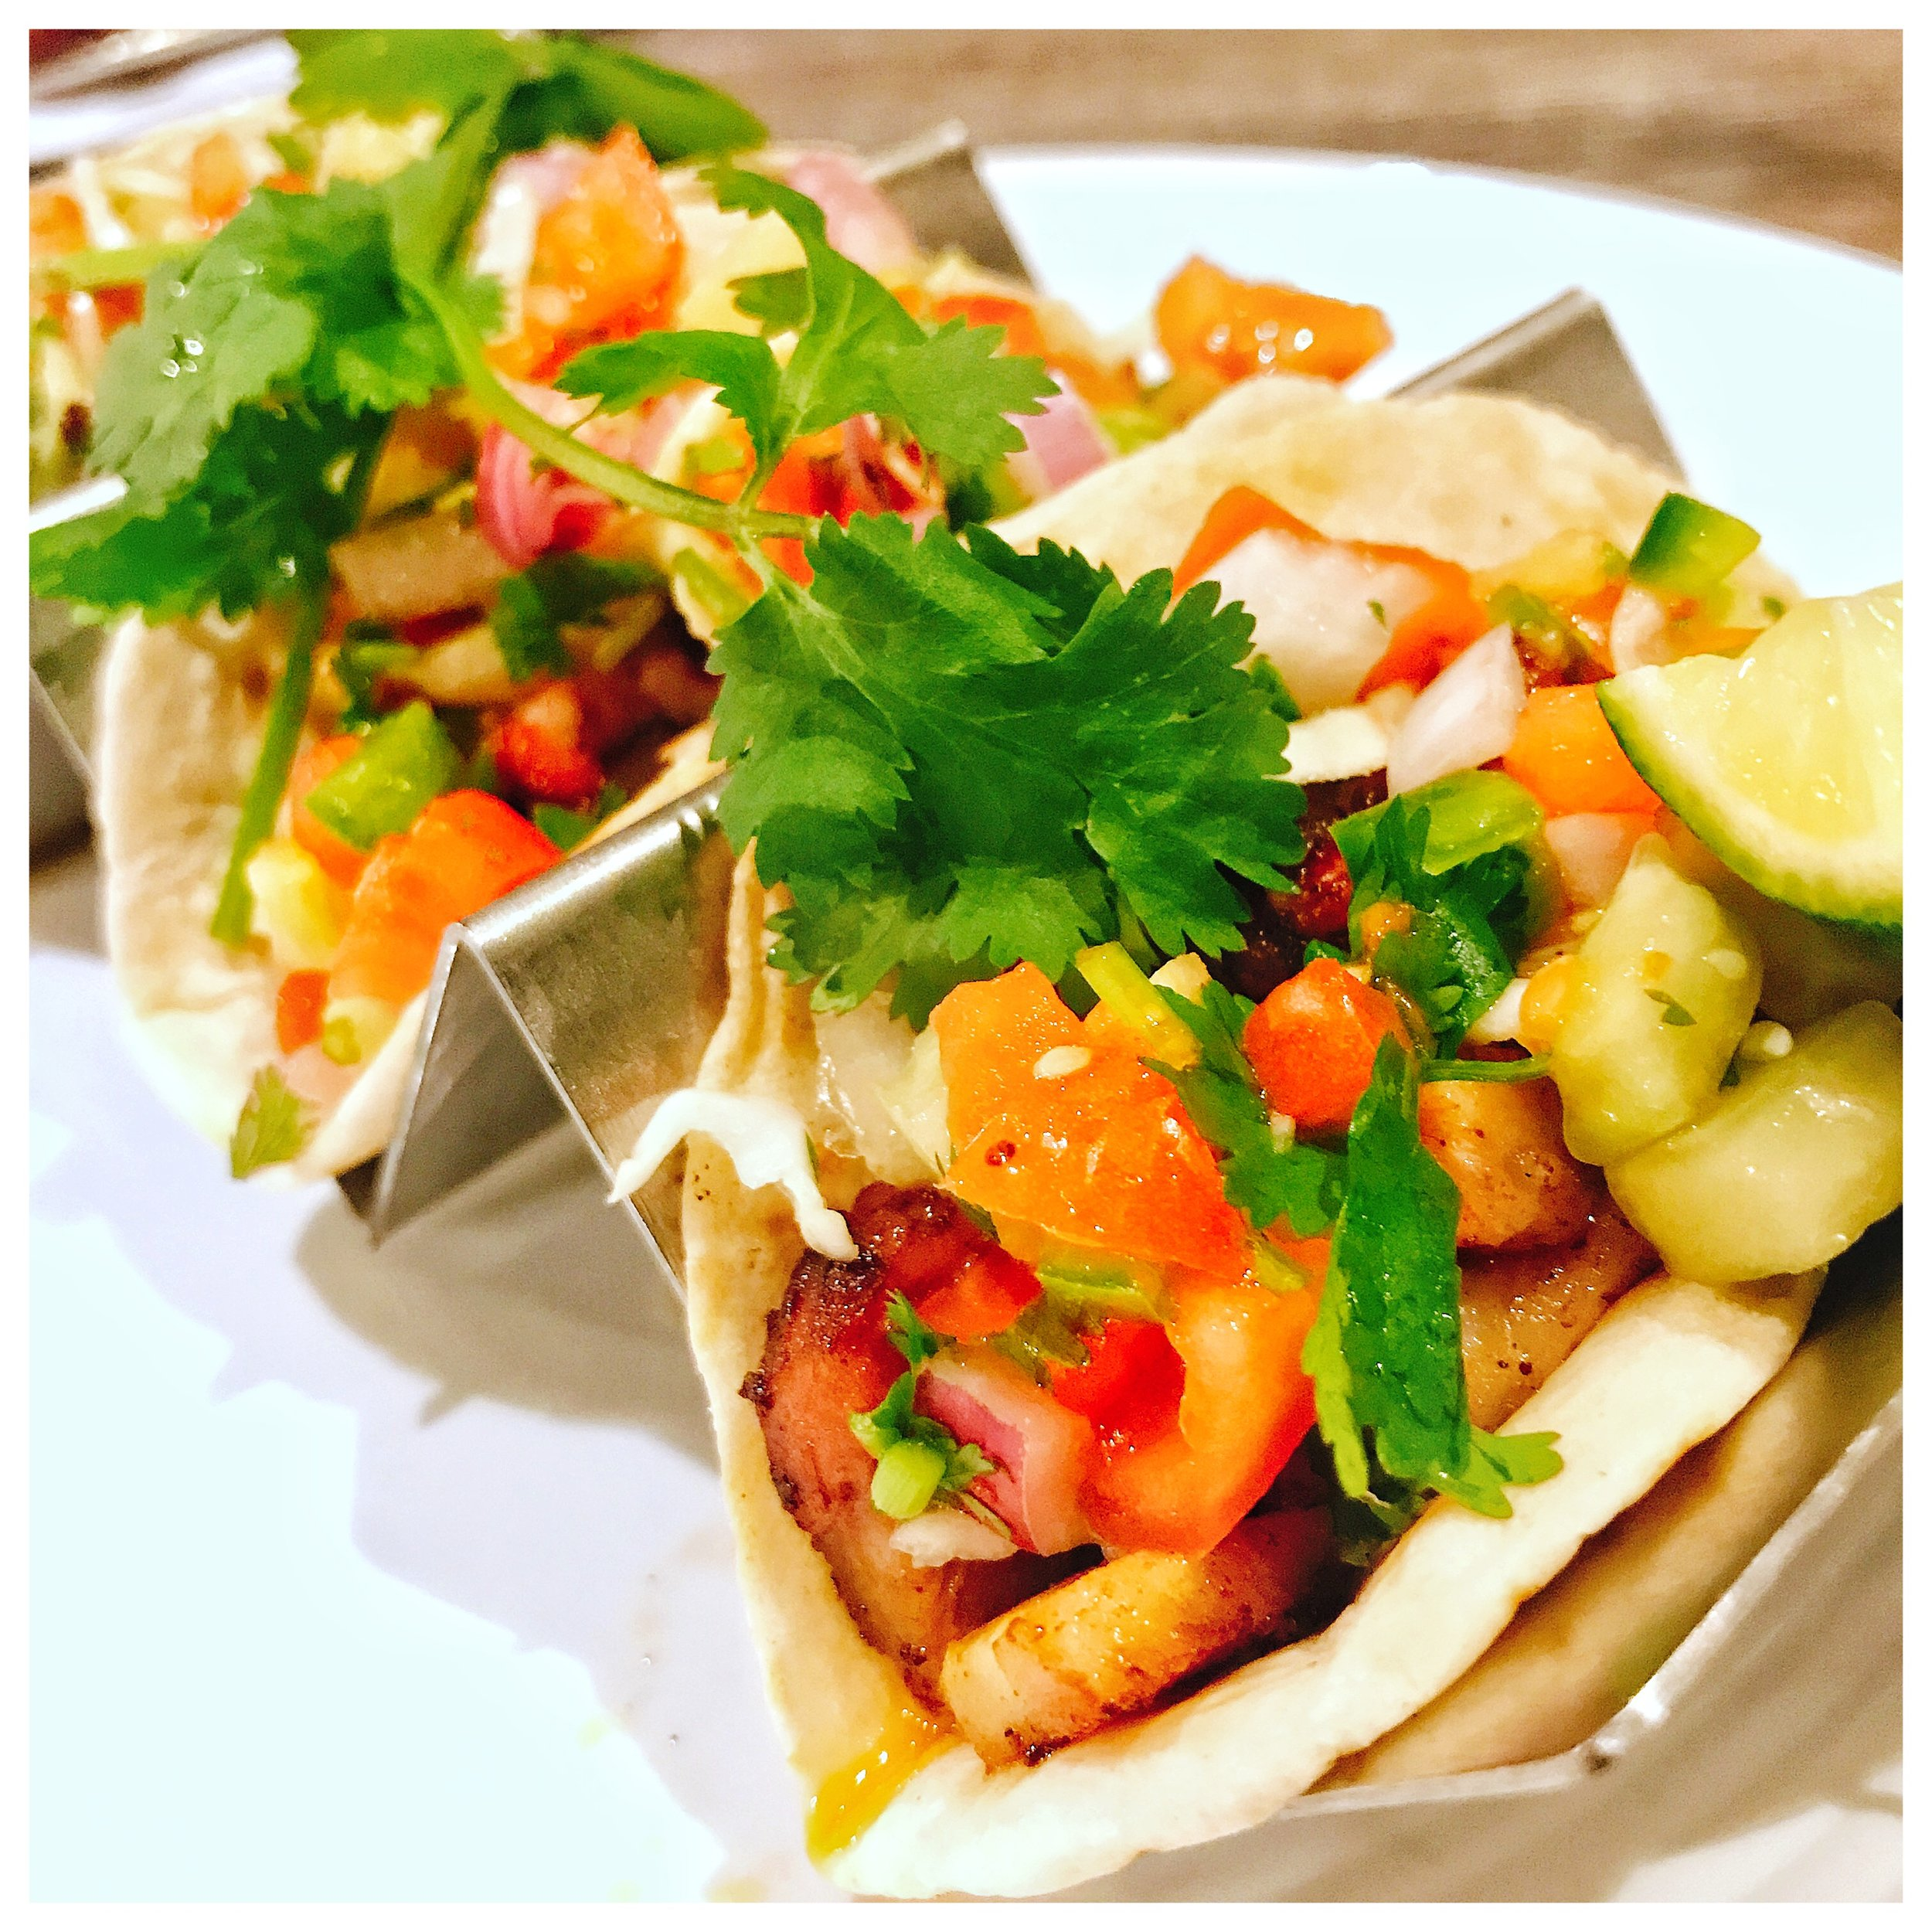 Pork Belly Tacos - Well when pork belly is on the menu, you order it! I was actually really surprised at the sheer amount of pork belly that Deejai fills these tacos with! Every bite was delicious! These are topped with a fresh Pico de Gallo as well to add a bit of freshness. Overall really good tacos!